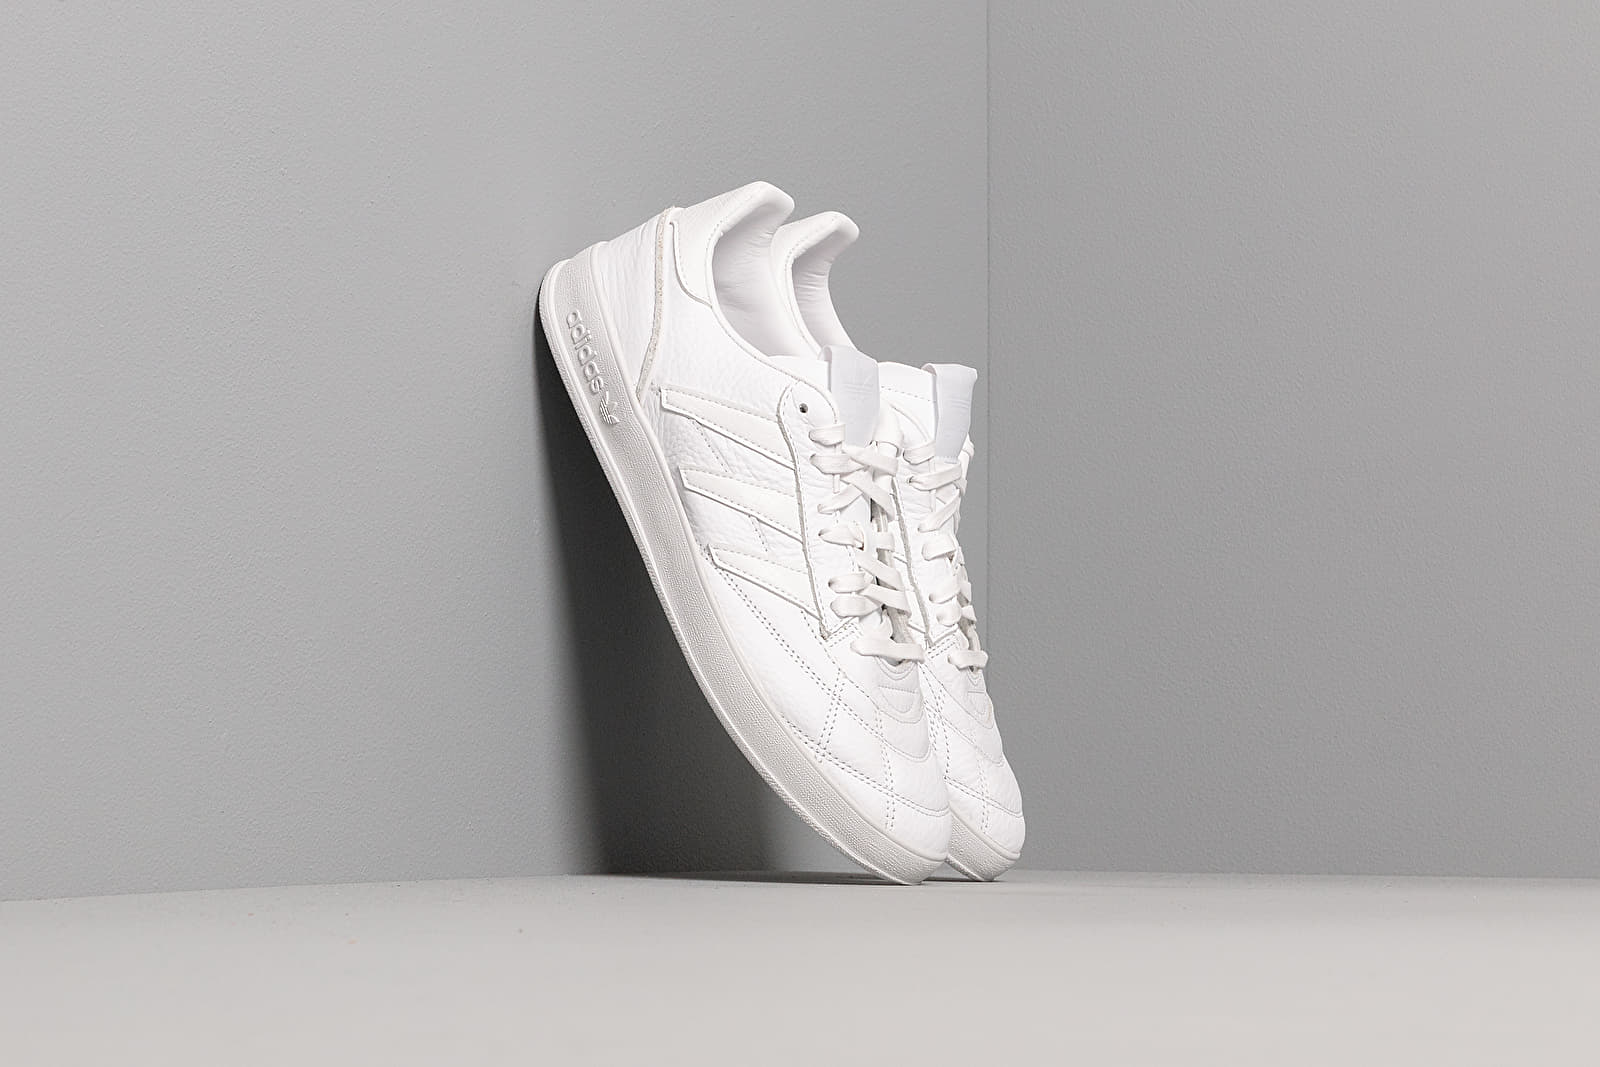 Chaussures et baskets homme adidas Sobakov P94 Ftw White/ Ftw White/ Scarlet